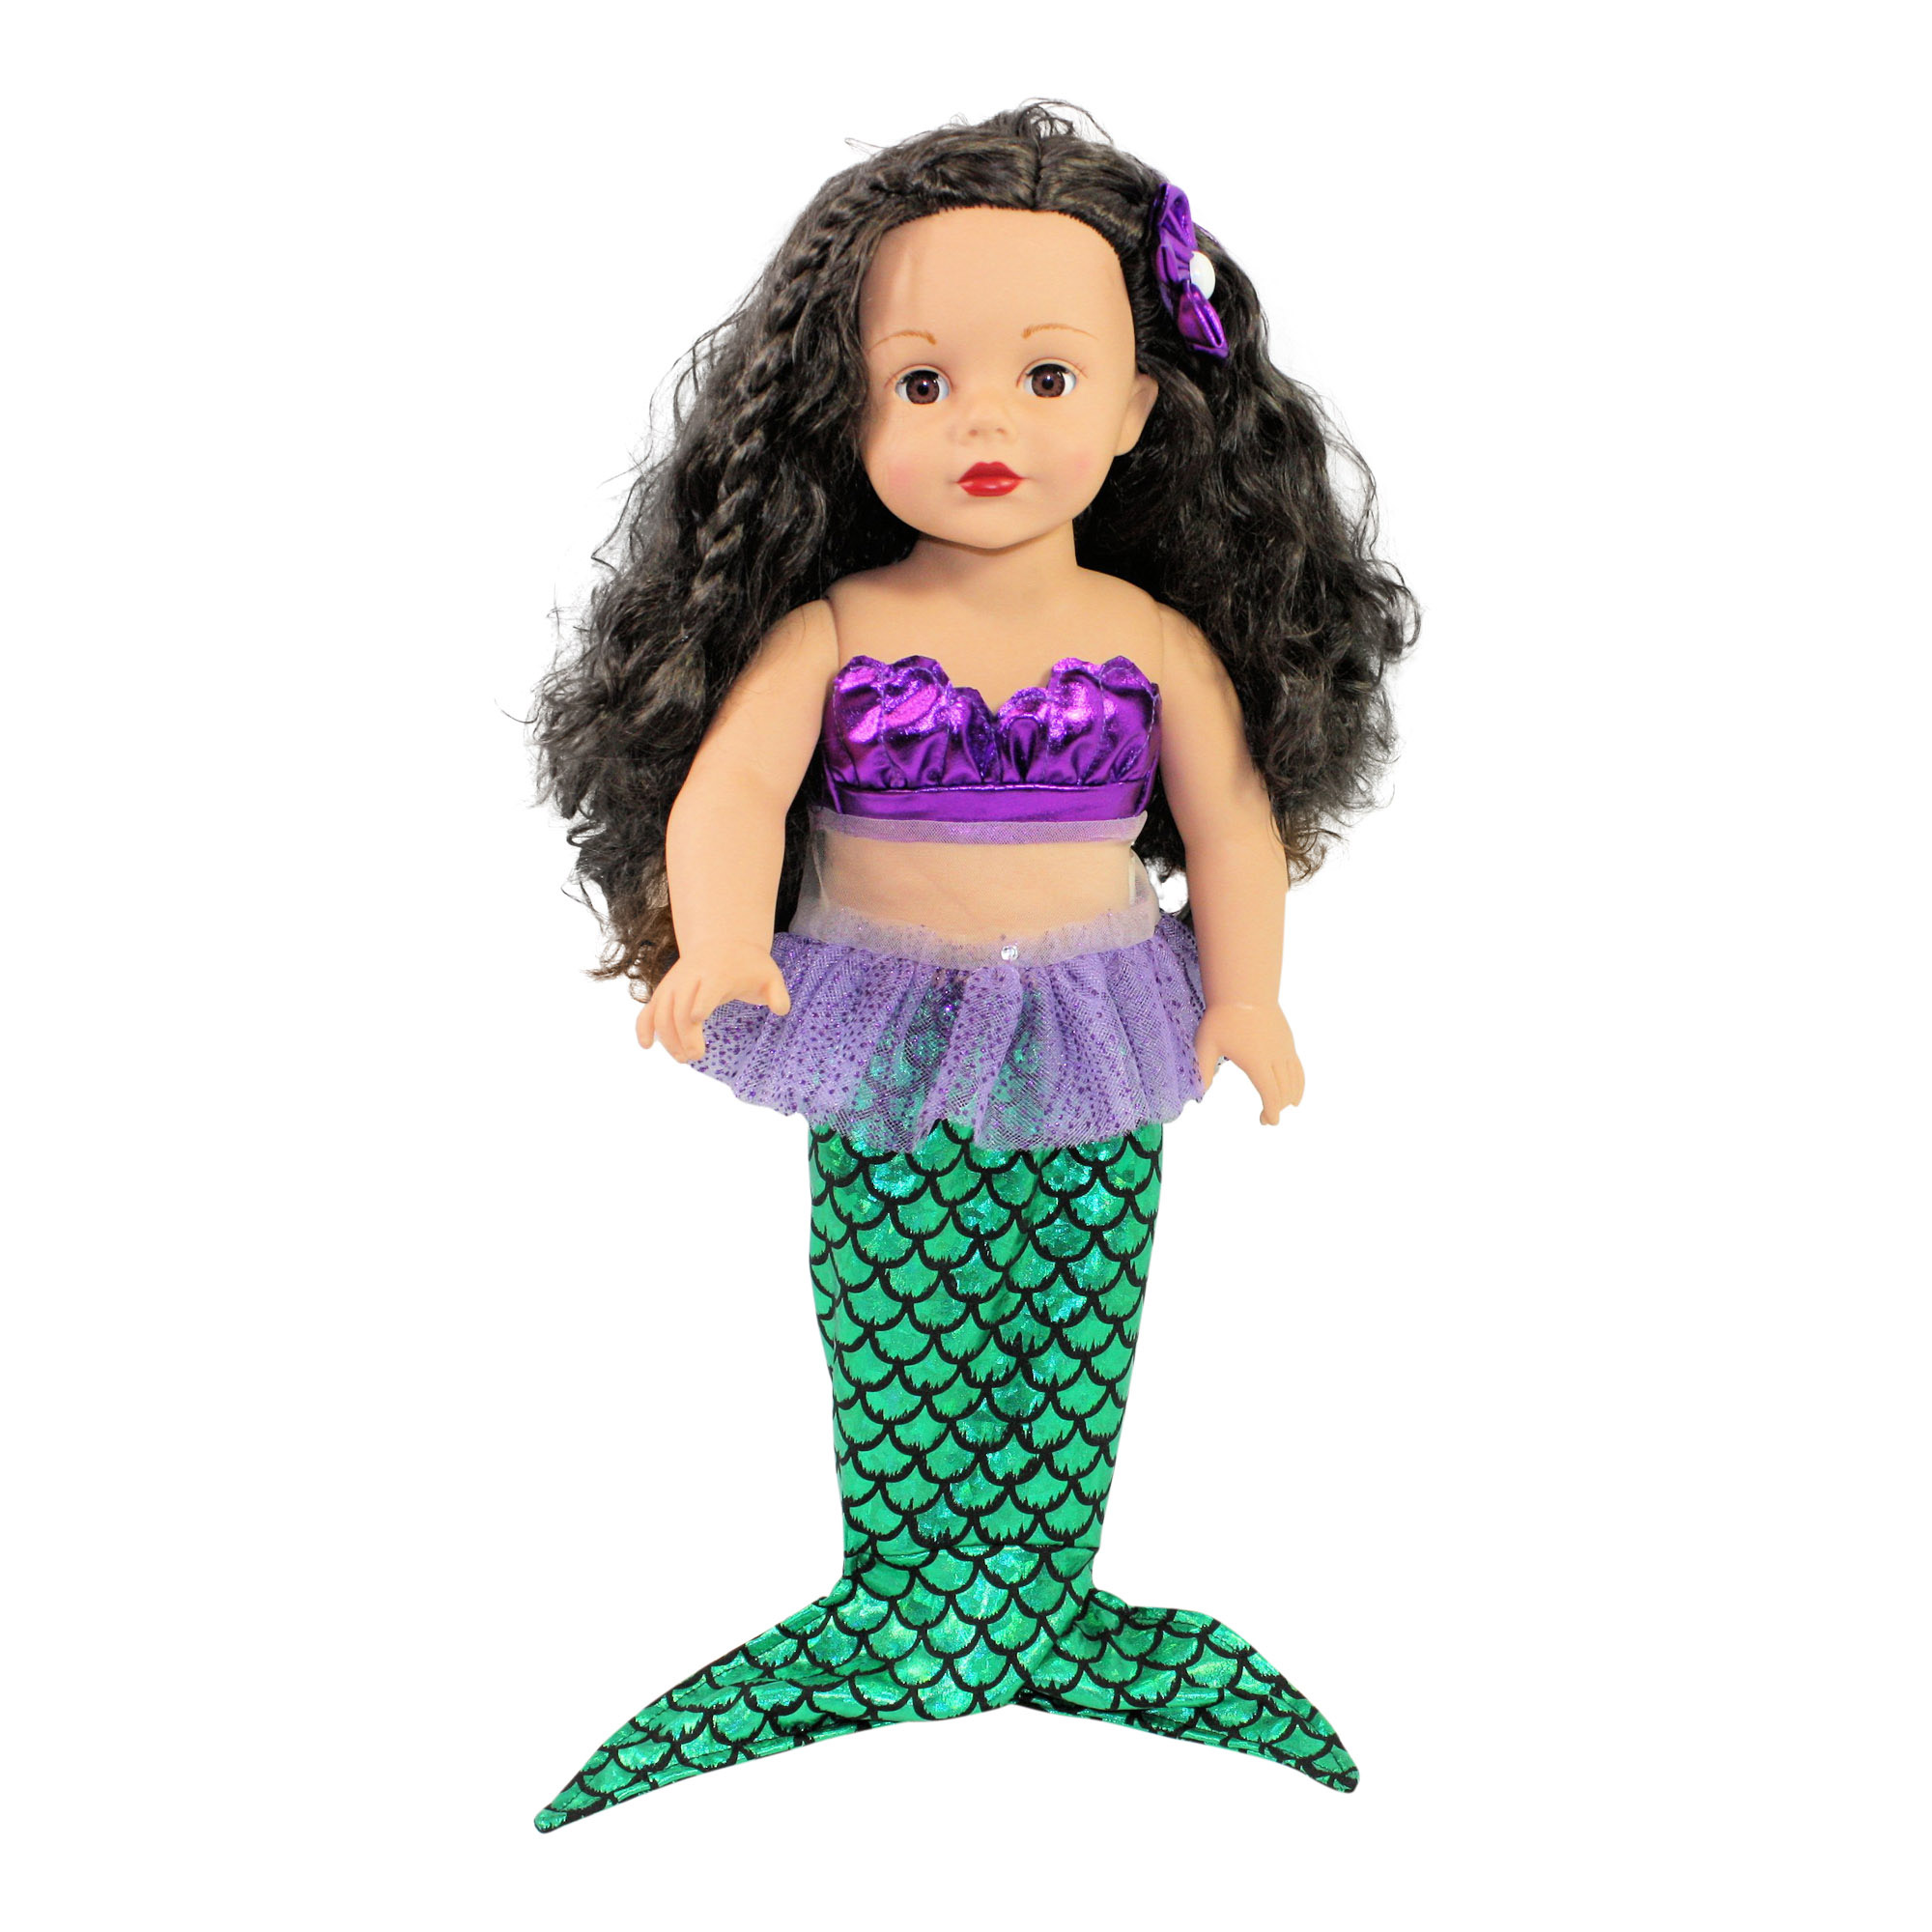 Ari and Friends Mermaid Costume Fits 18 inch Doll Clothes